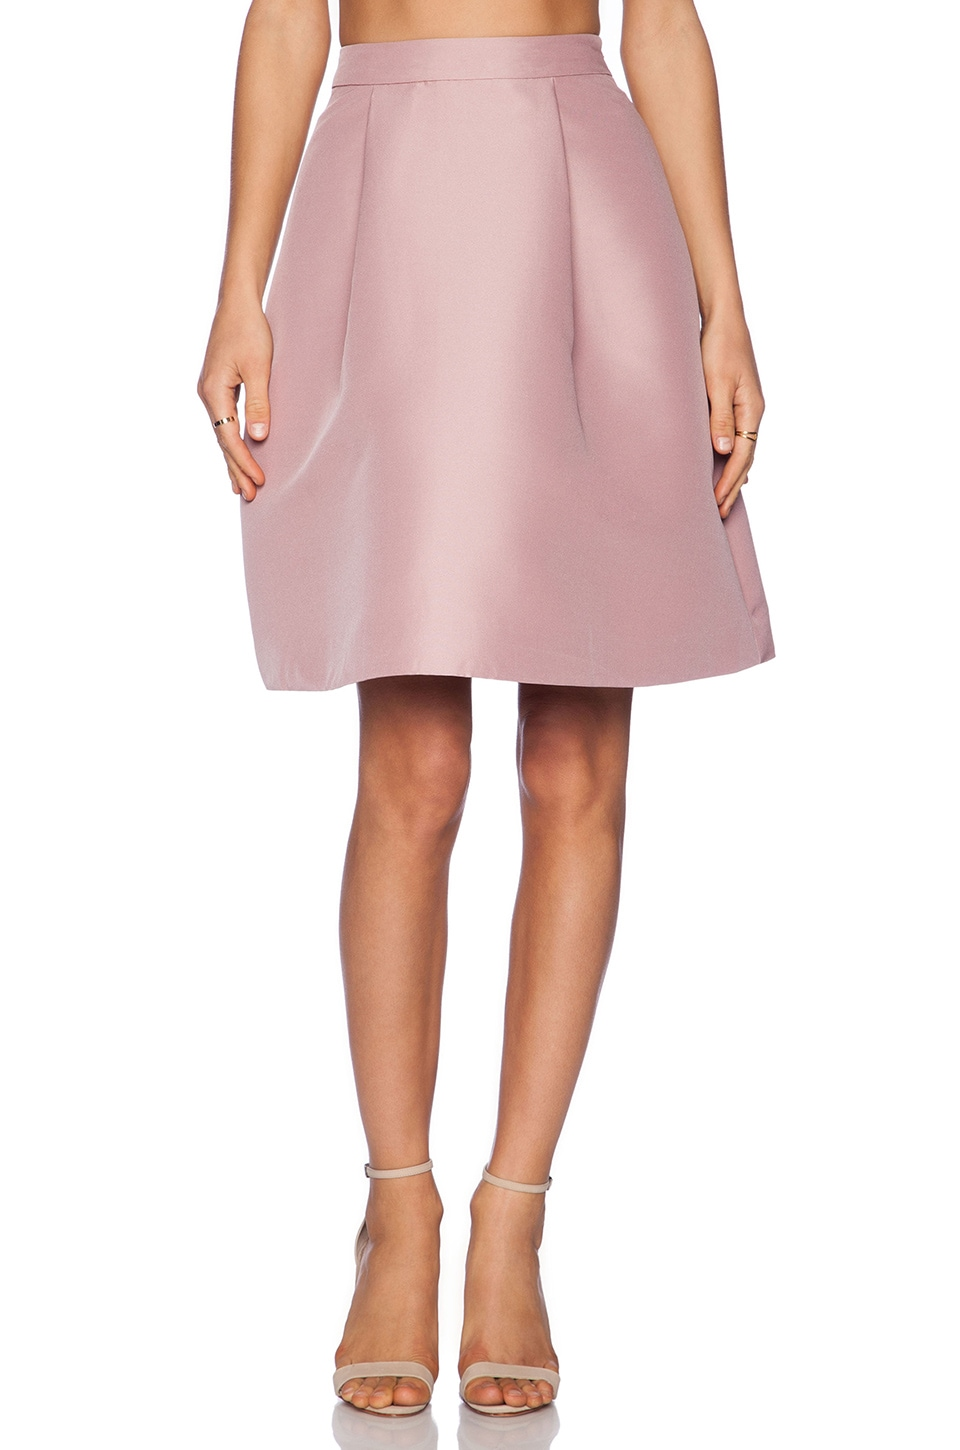 kate spade new york Pleated A Line Skirt in Light Chocolate Milk